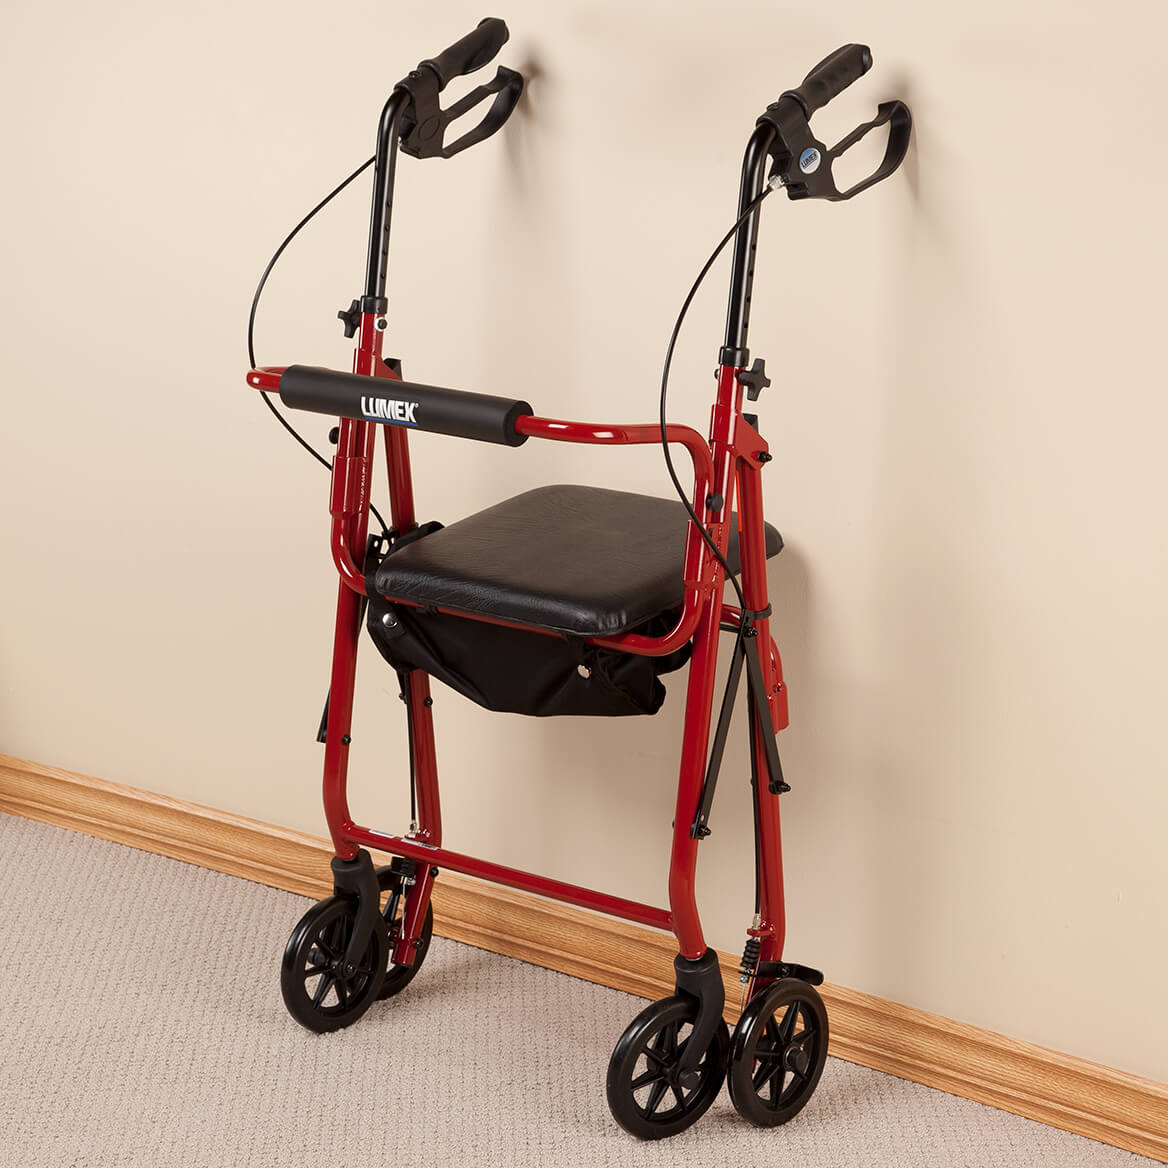 Lumex® Walkabout Basic Rollator-351266